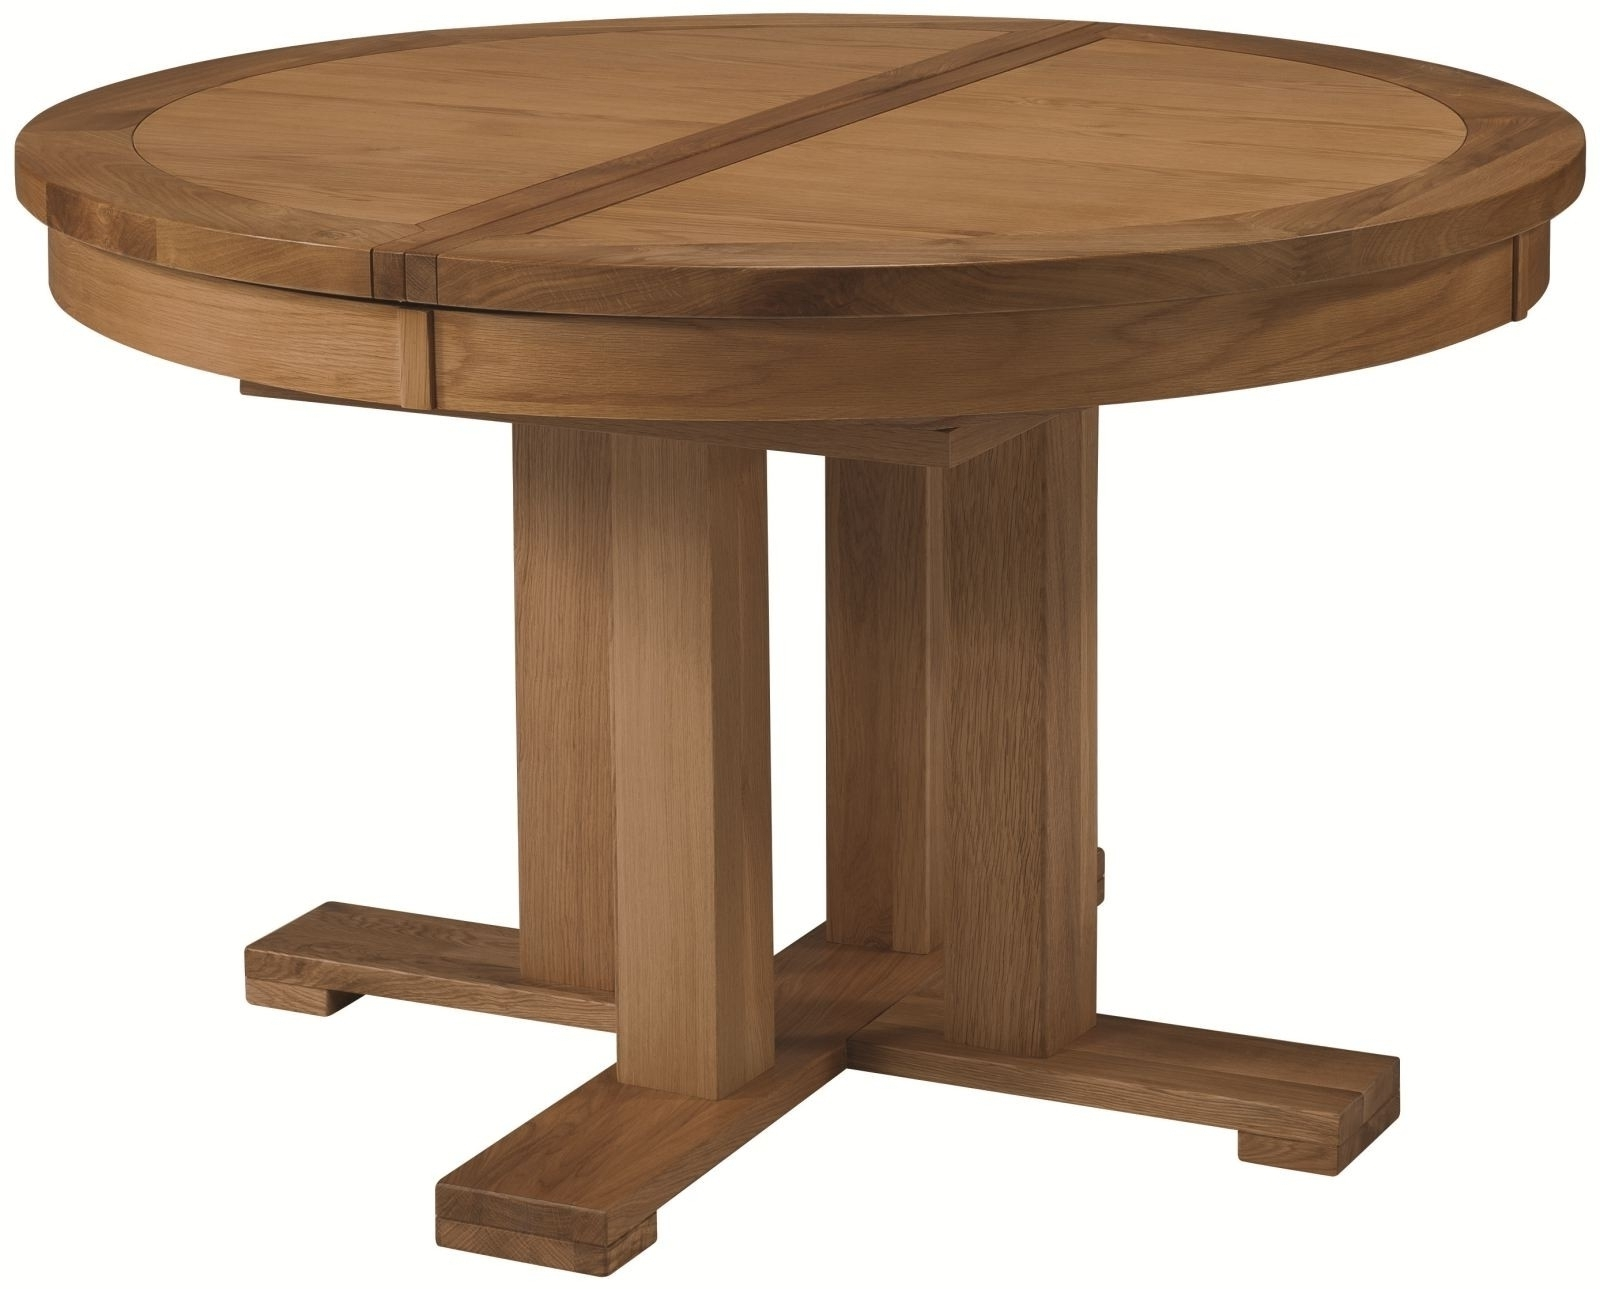 Preferred Round Brown Wooden Dining Table Having Brown Wooden Bar Stand And With Round Extendable Dining Tables (View 16 of 25)